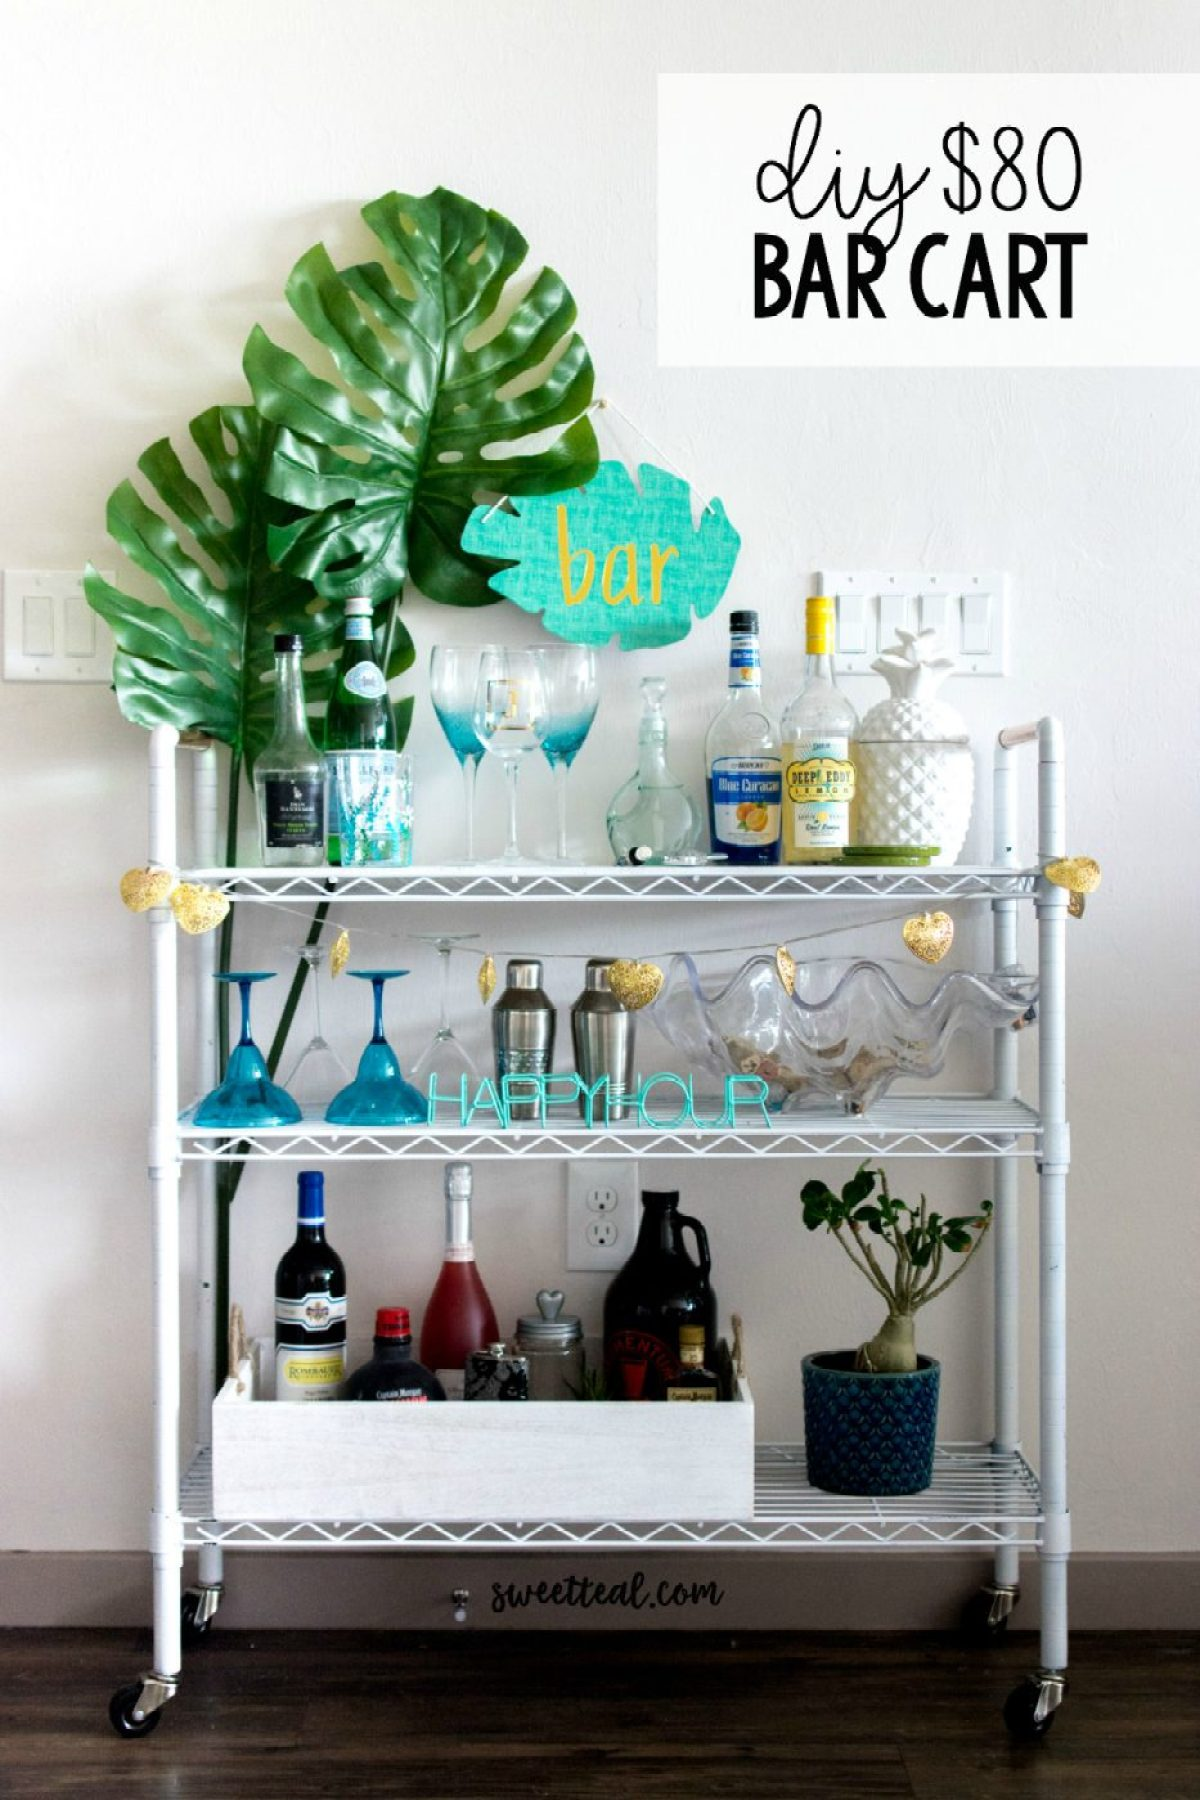 DIY $80 Bar Cart by Jenny Bess of Sweet Teal